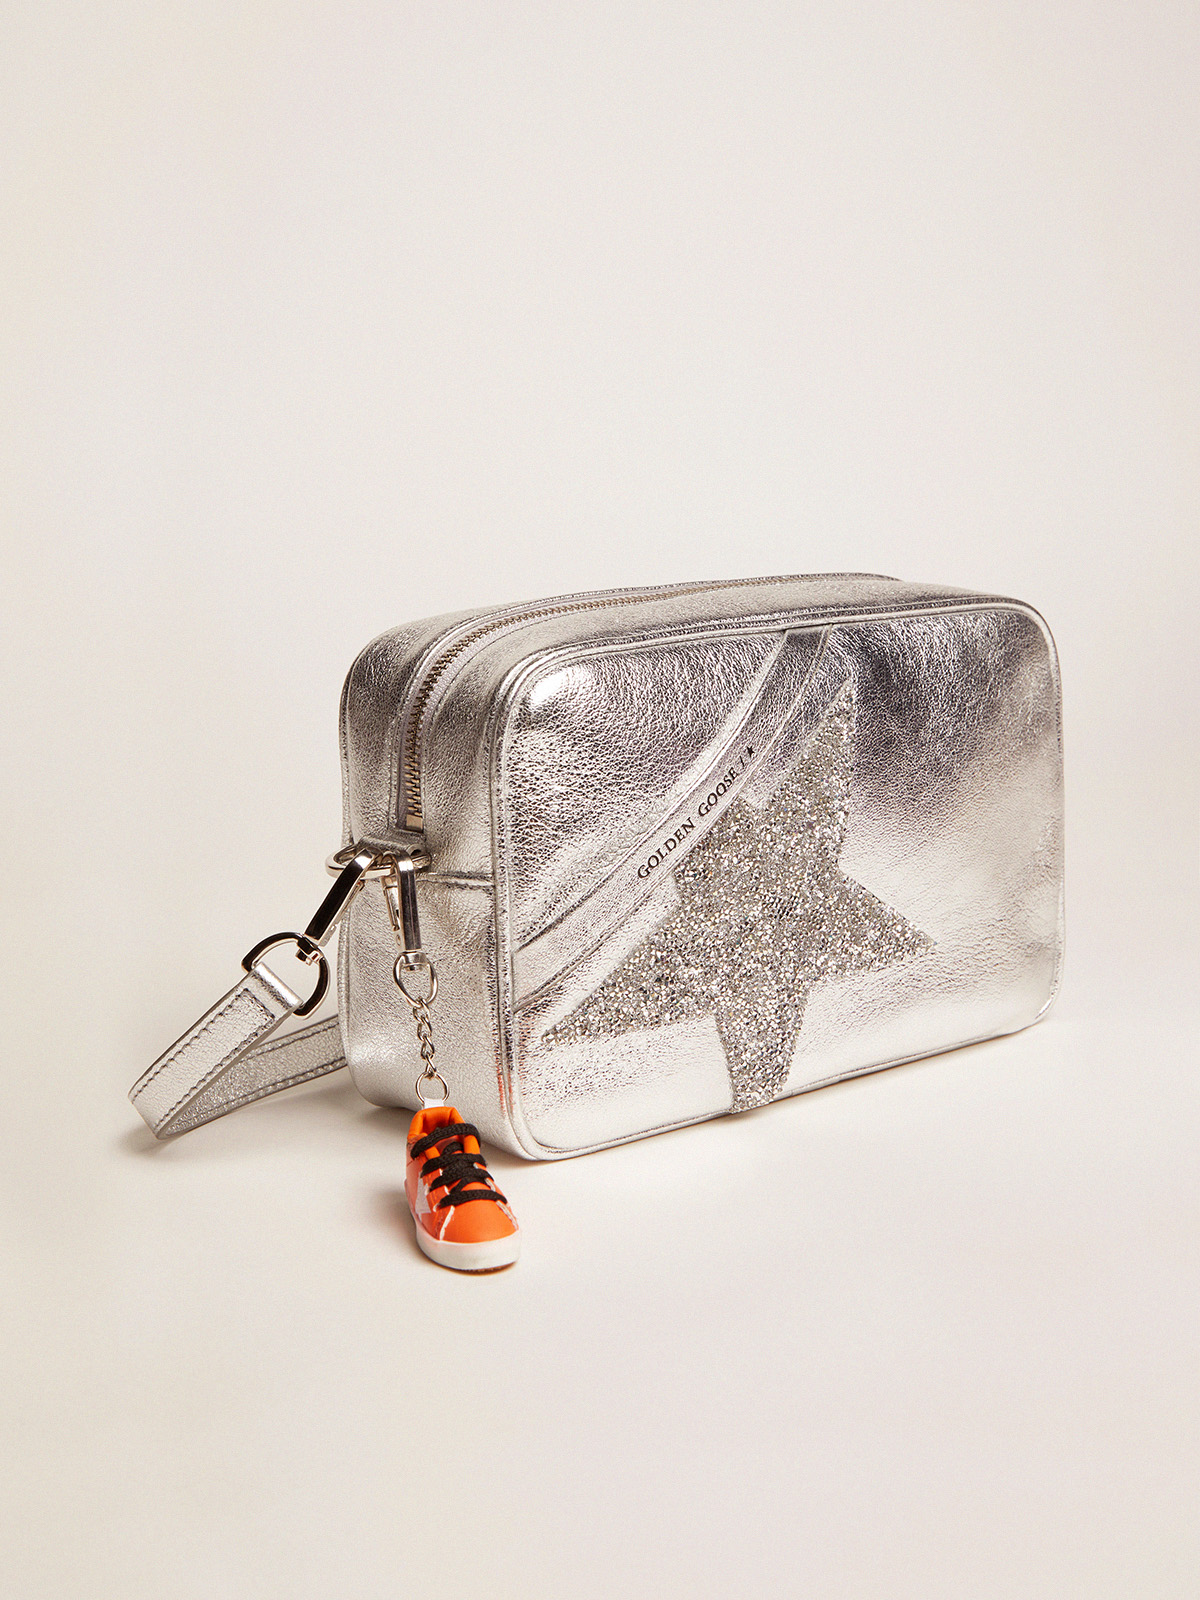 Golden Goose - Silver Star Bag made of laminated leather with Swarovski star in